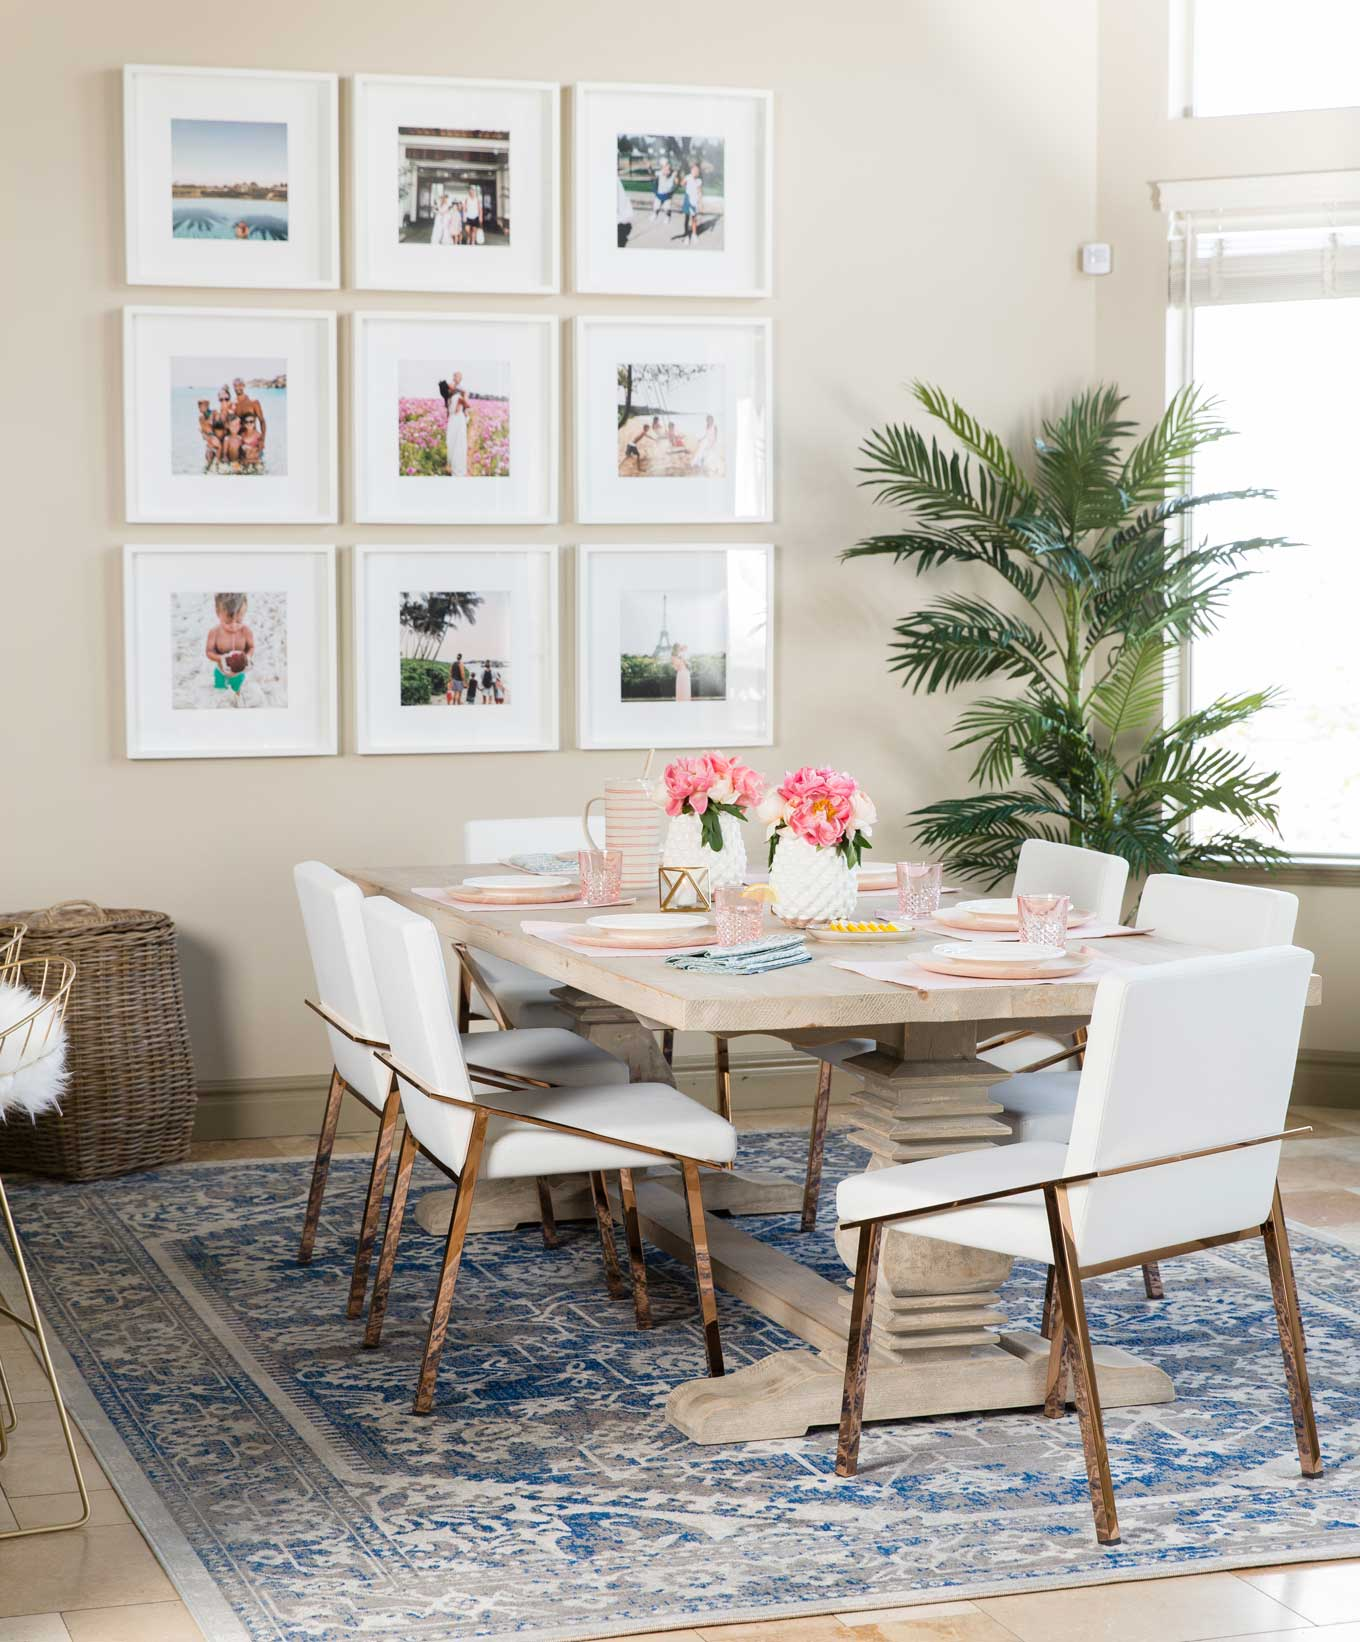 This Rug Placement Leaves Enough Room For The Chairs Around The Table To  Move! Itu0027s